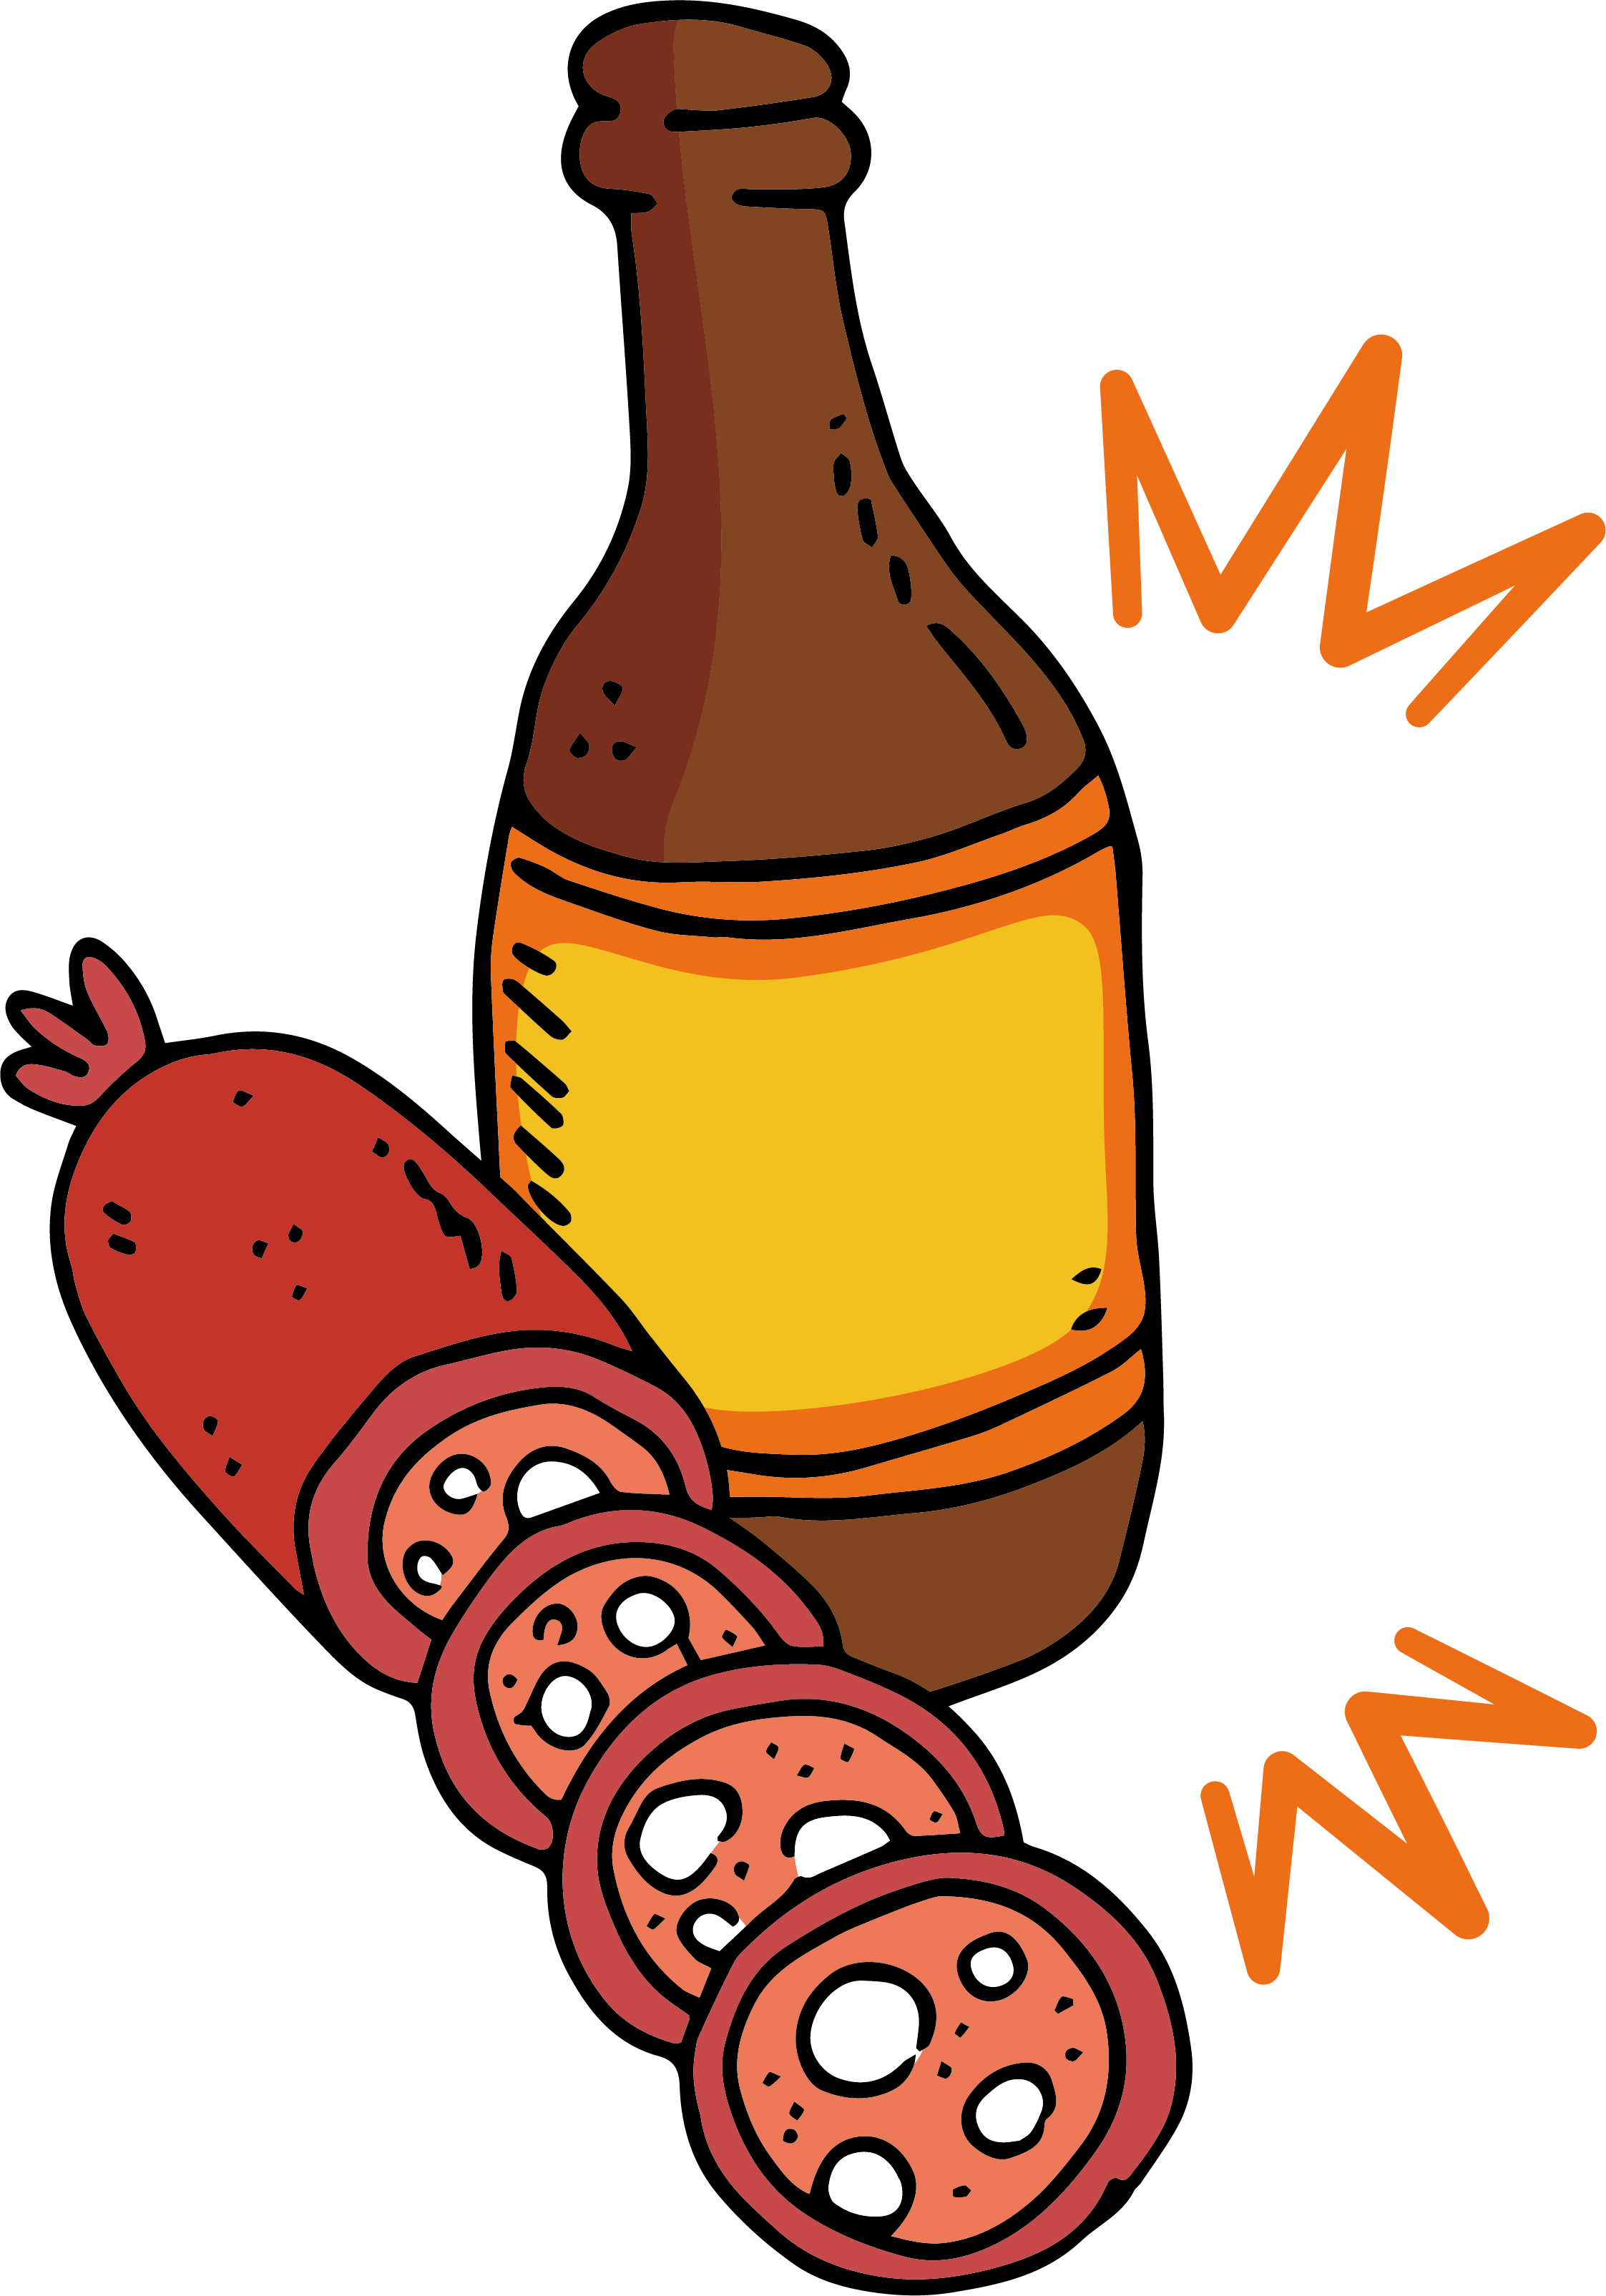 Roasting hot dog clipart jpg freeuse library Sausage Beer Bratwurst Hot dog Clip art - Baked sausage Beer Poster ... jpg freeuse library